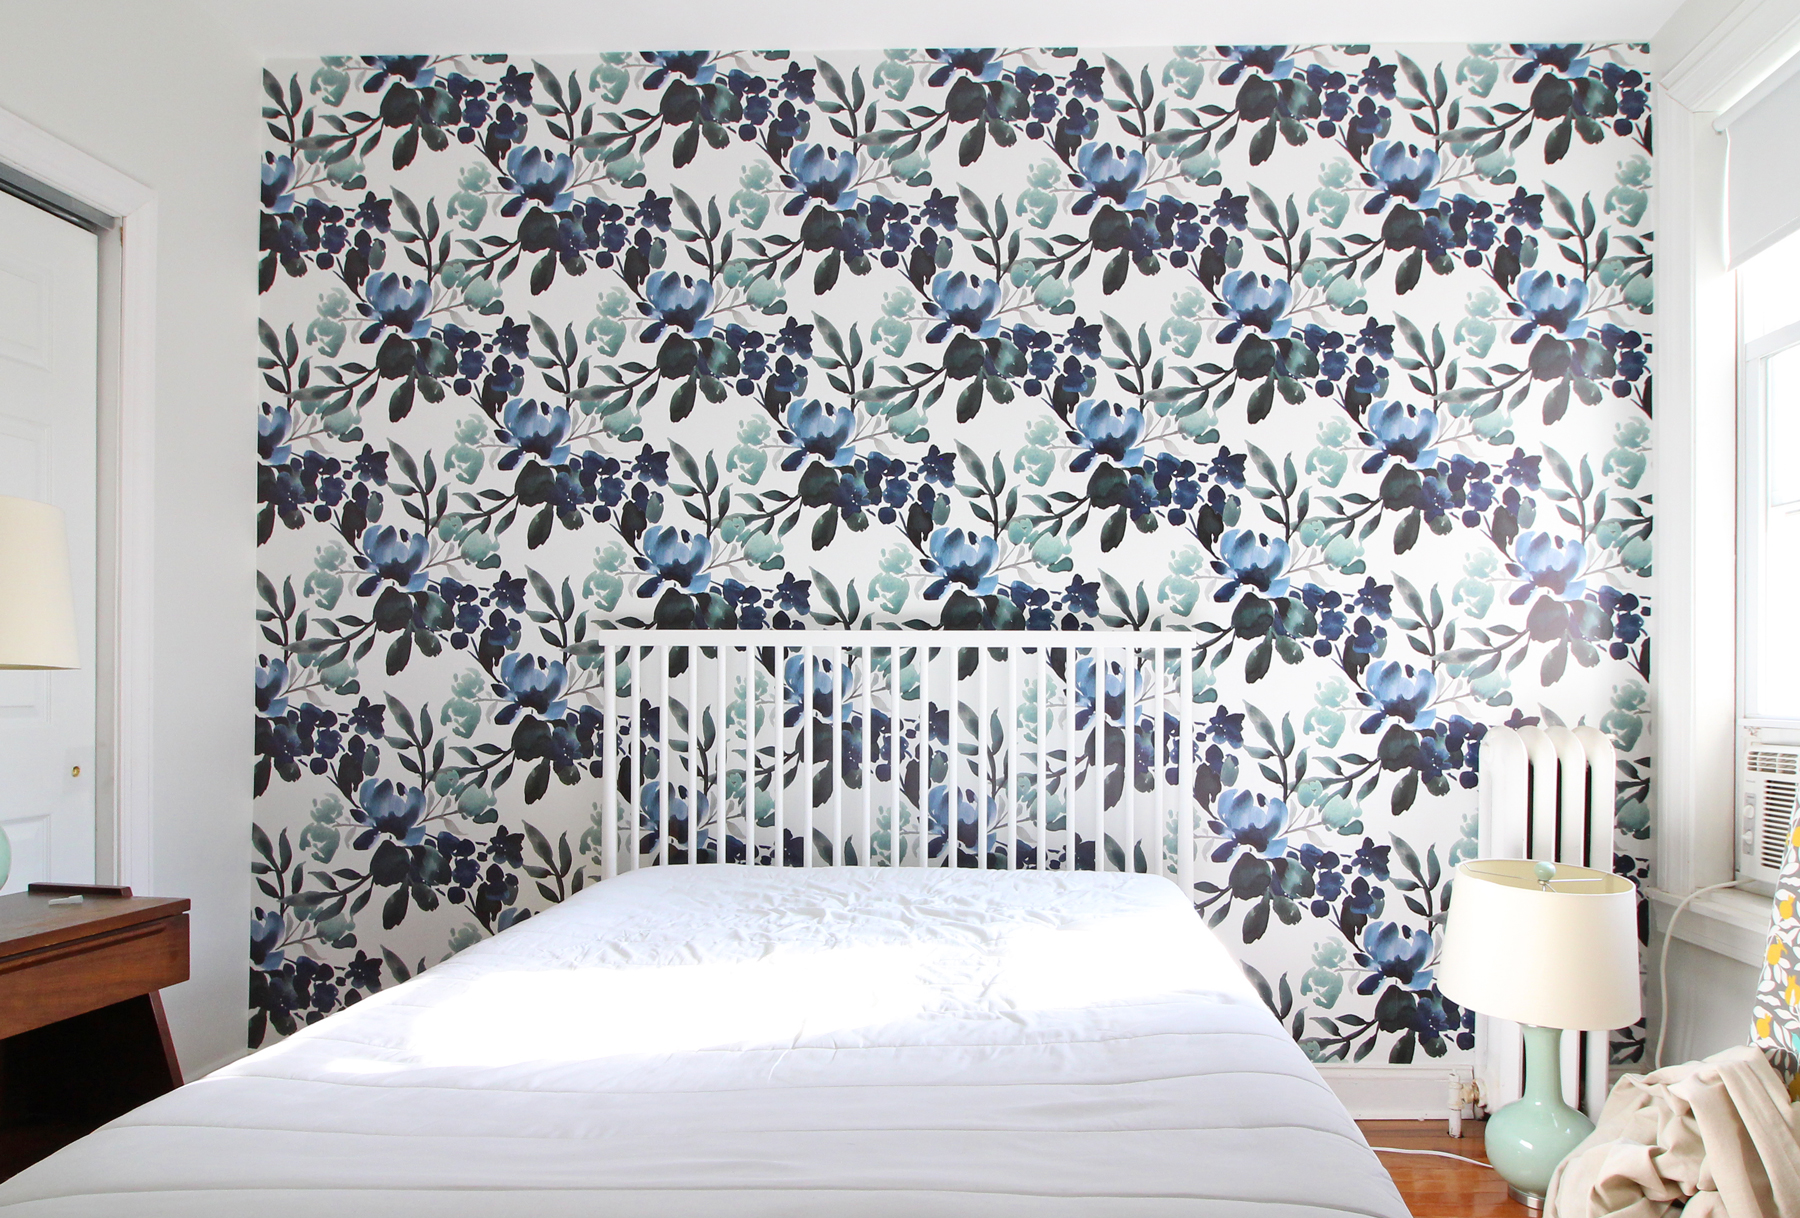 PROGRESS: after the installation of the blue green floral wallpaper from Sweet Pea Wall Design!